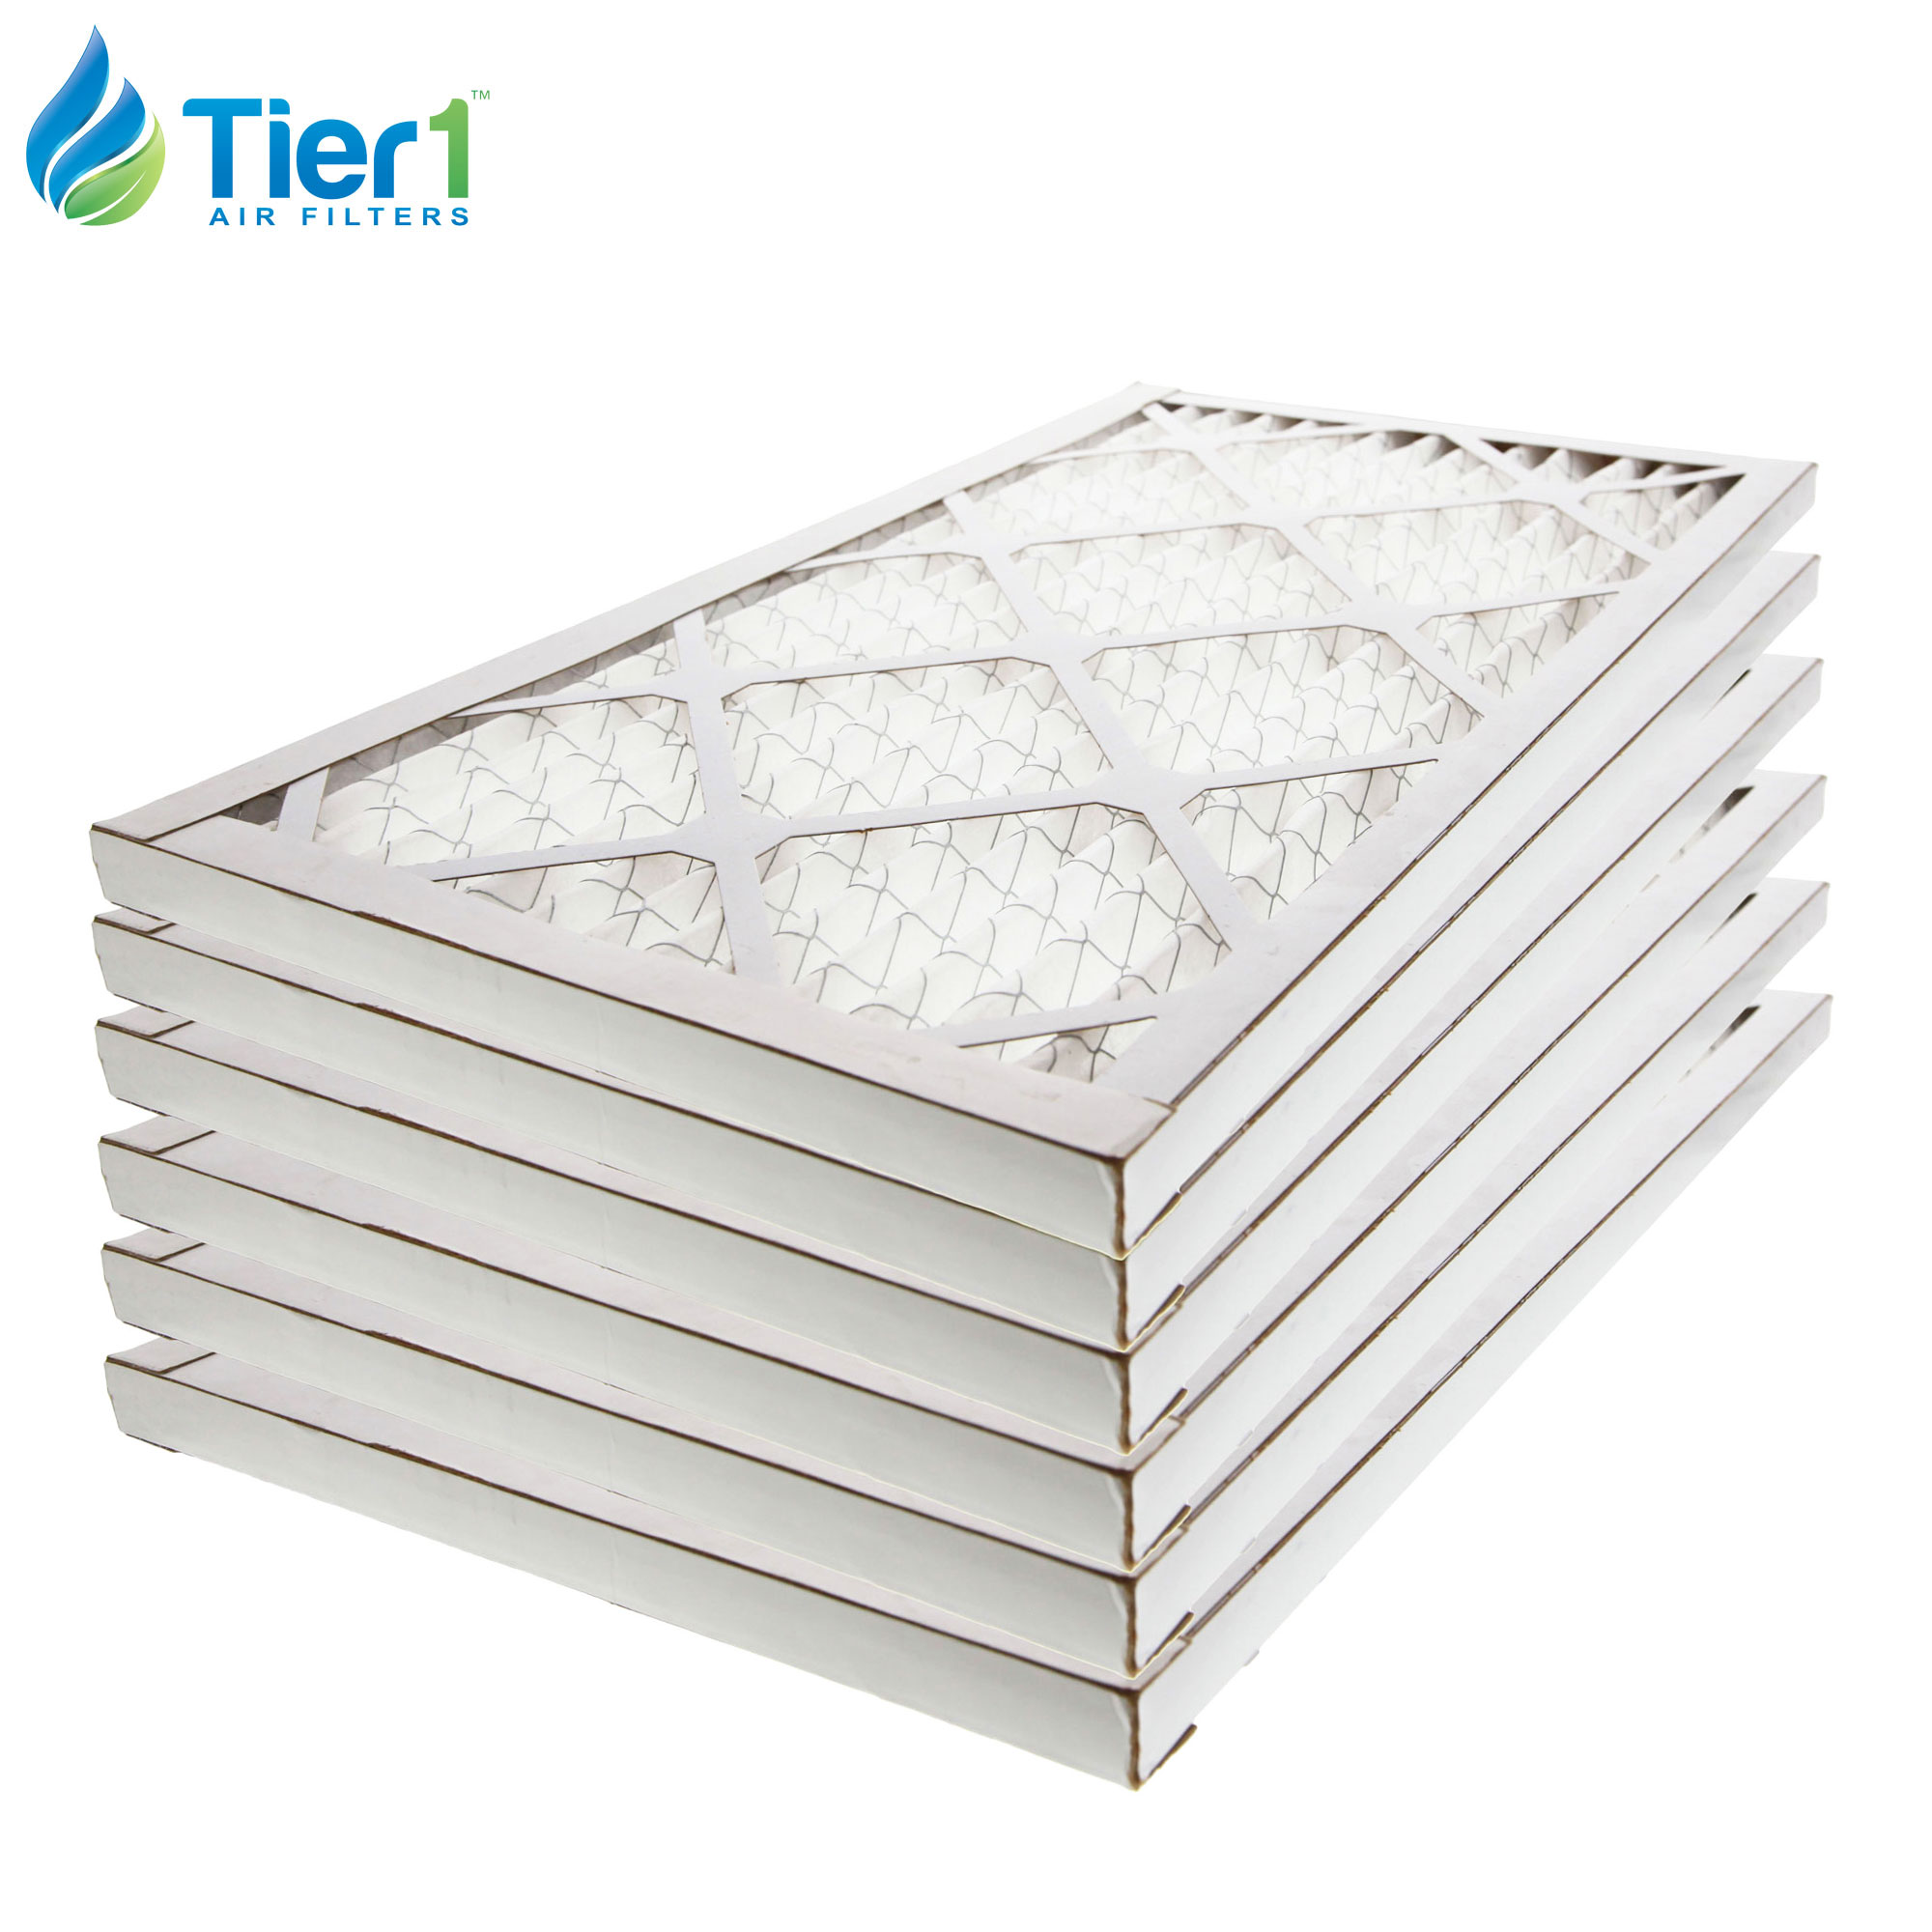 FAPF03 Filtrete Air Purifier Replacement Filter 12x21x1 by Tier1 (6-Pack) TIER1_RAP_011221_6_PACK